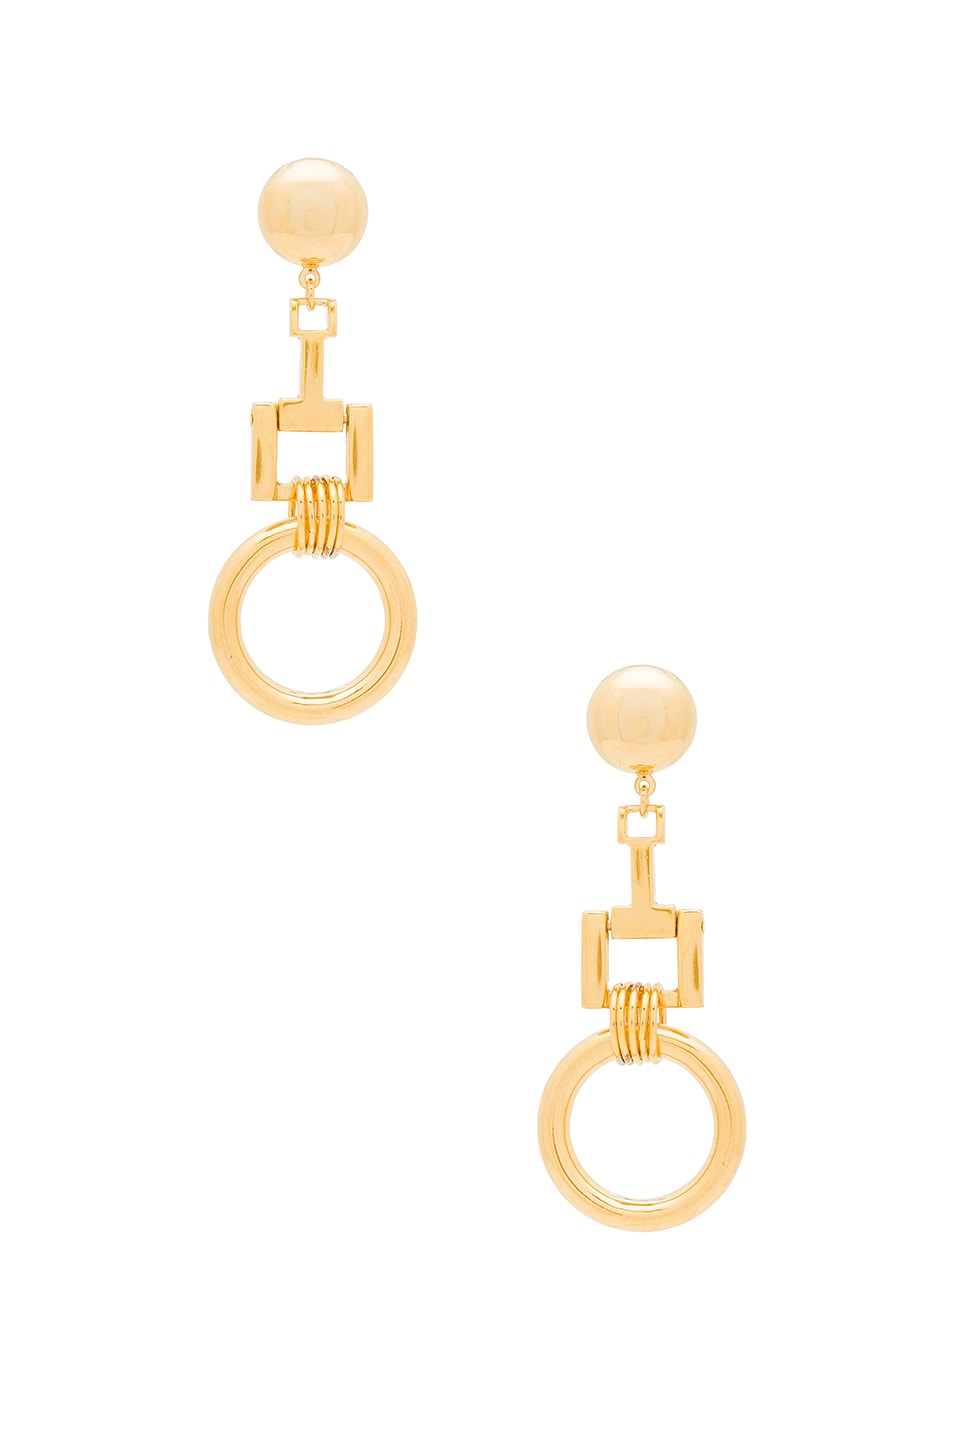 LARUICCI Linked Ring Earrings in Gold